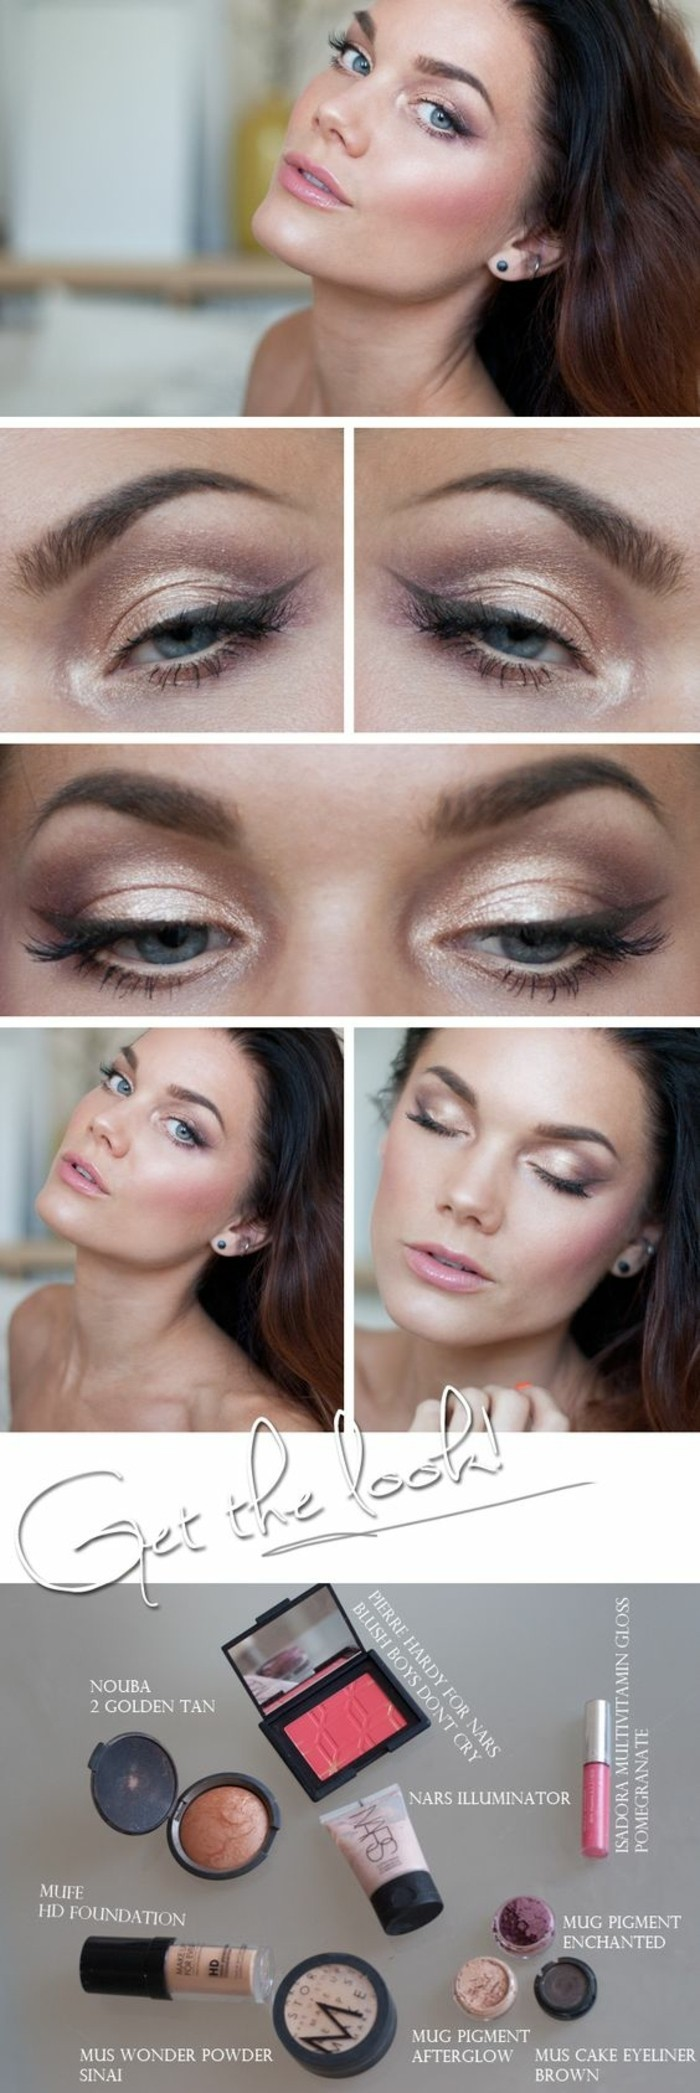 Maquillage Naturel 2016 Idees Design De Maison